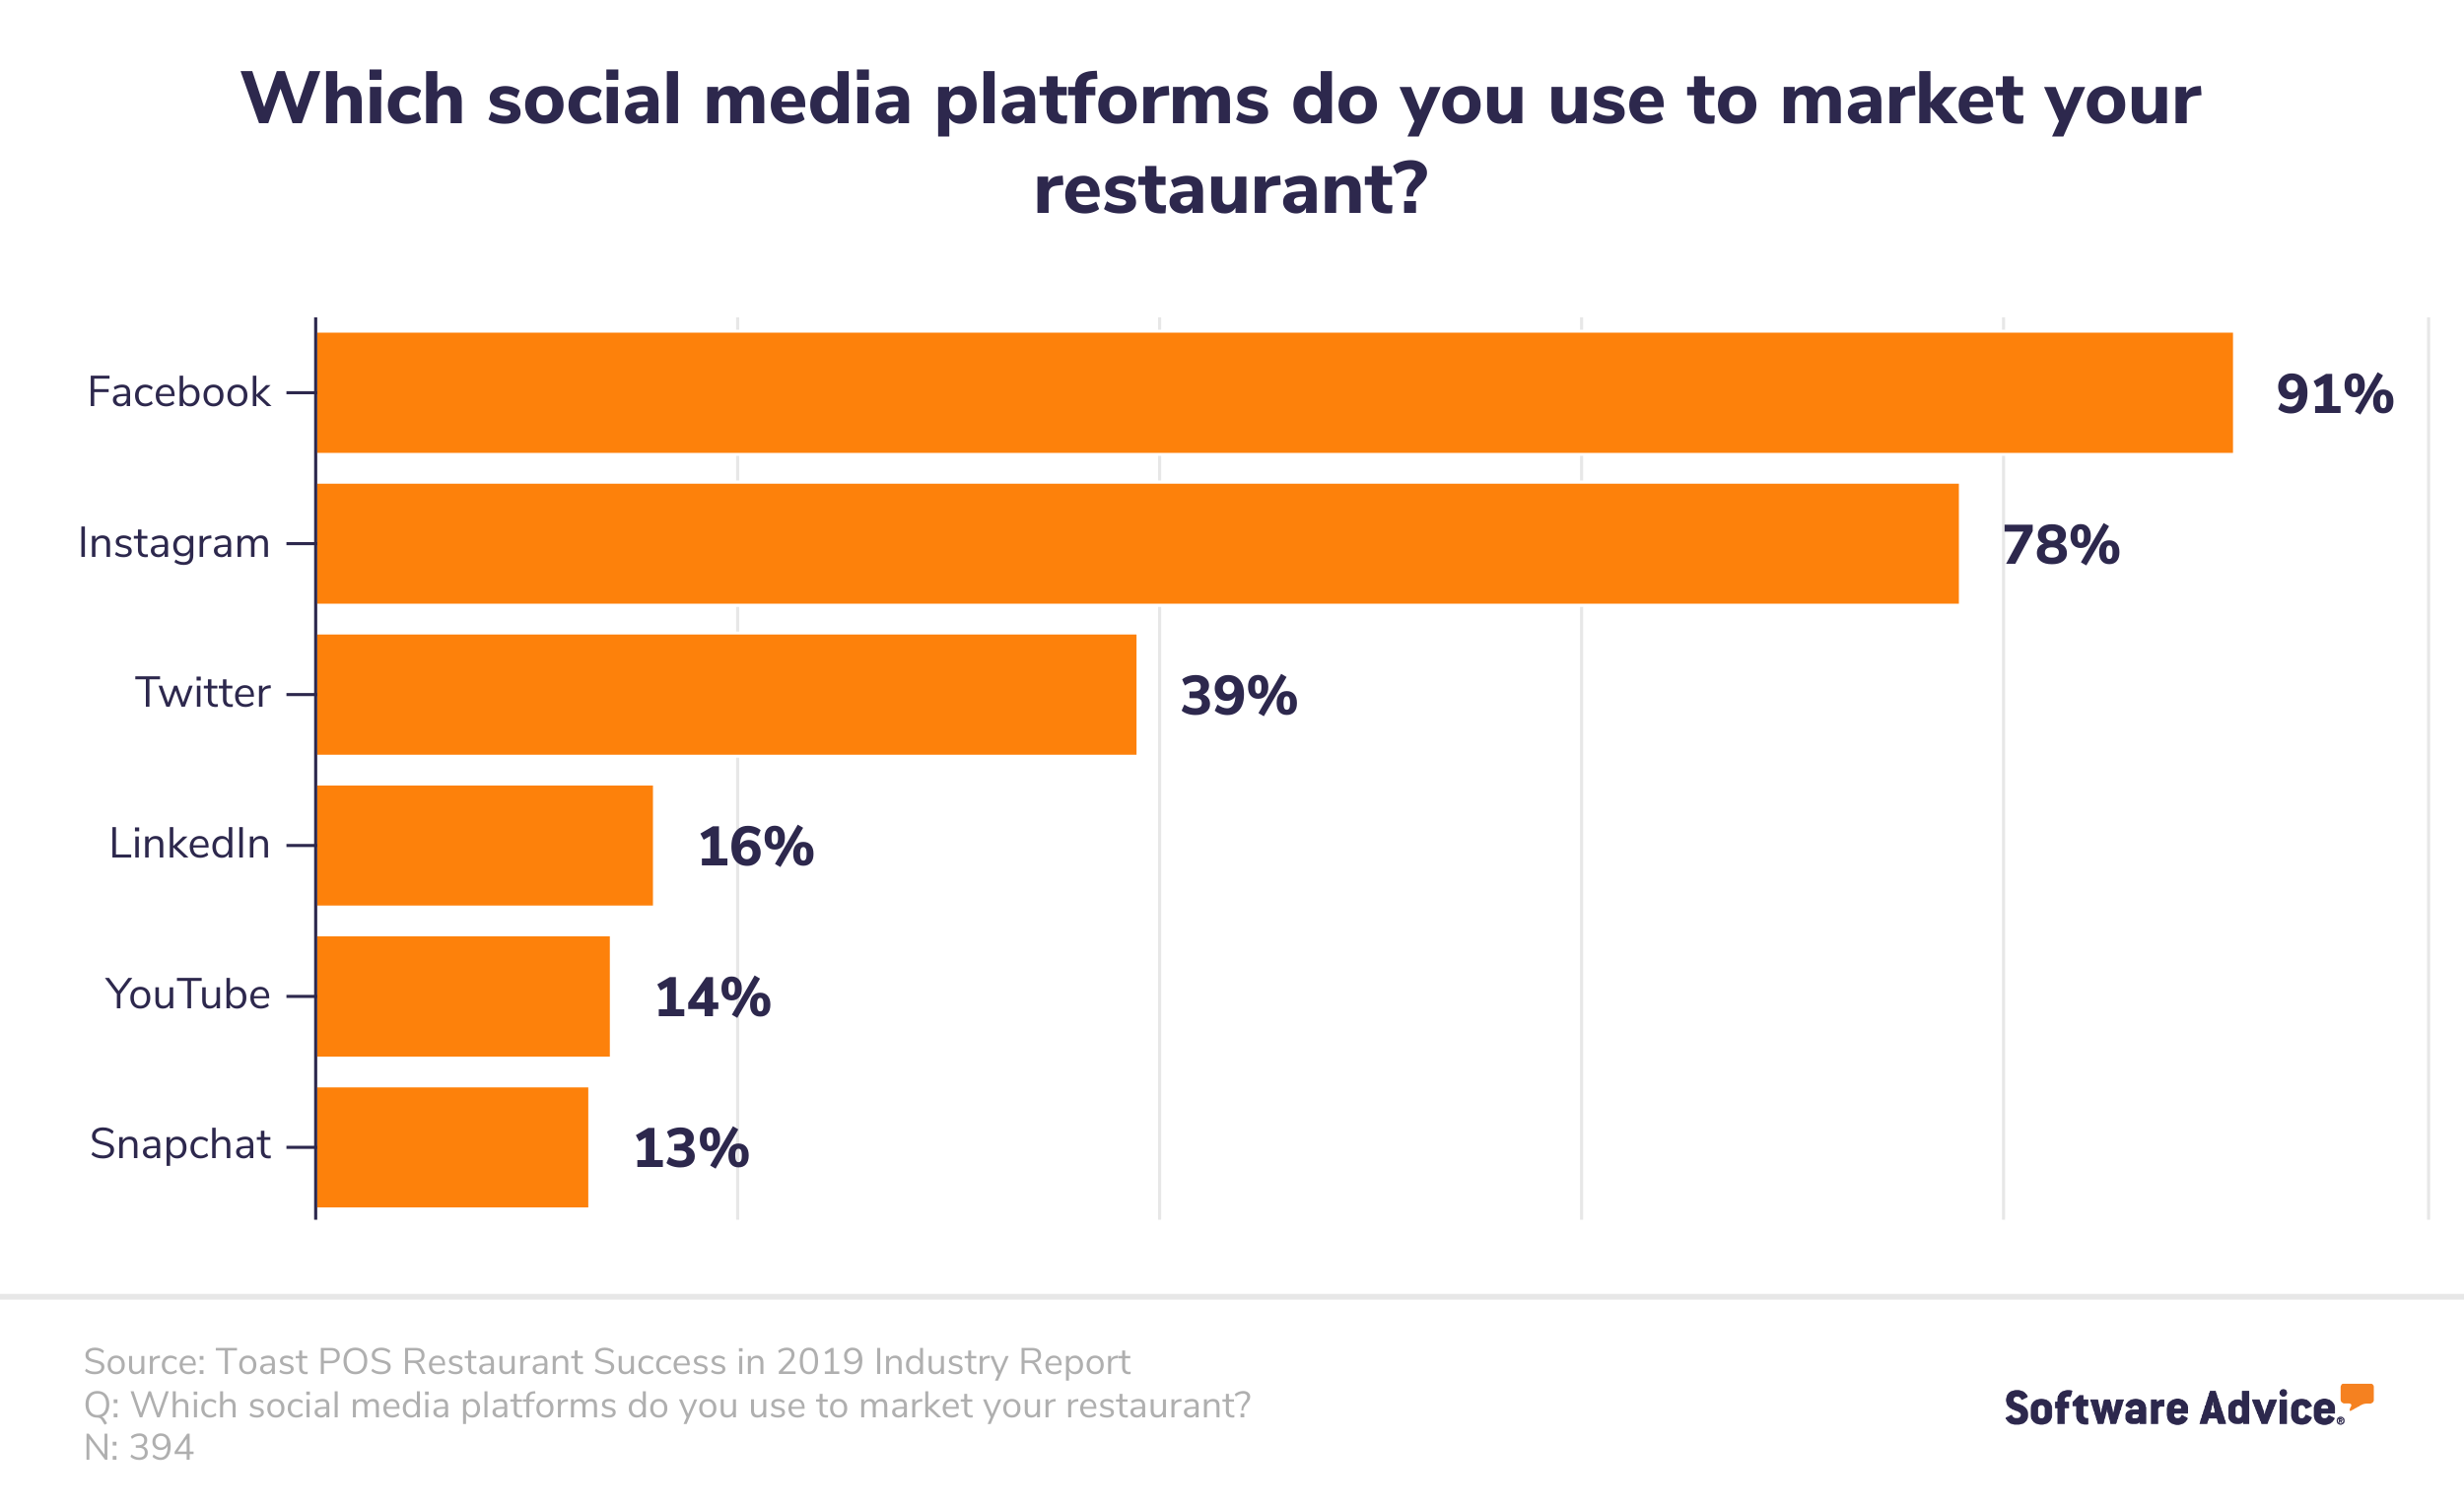 A horizontal bar chart showing which social media platforms restaurateurs use to market their restaurants: Facebook 91%, Instagram 78%, Twitter 39%, LinkedIn 16%, YouTube 14%, Snapchat 13%